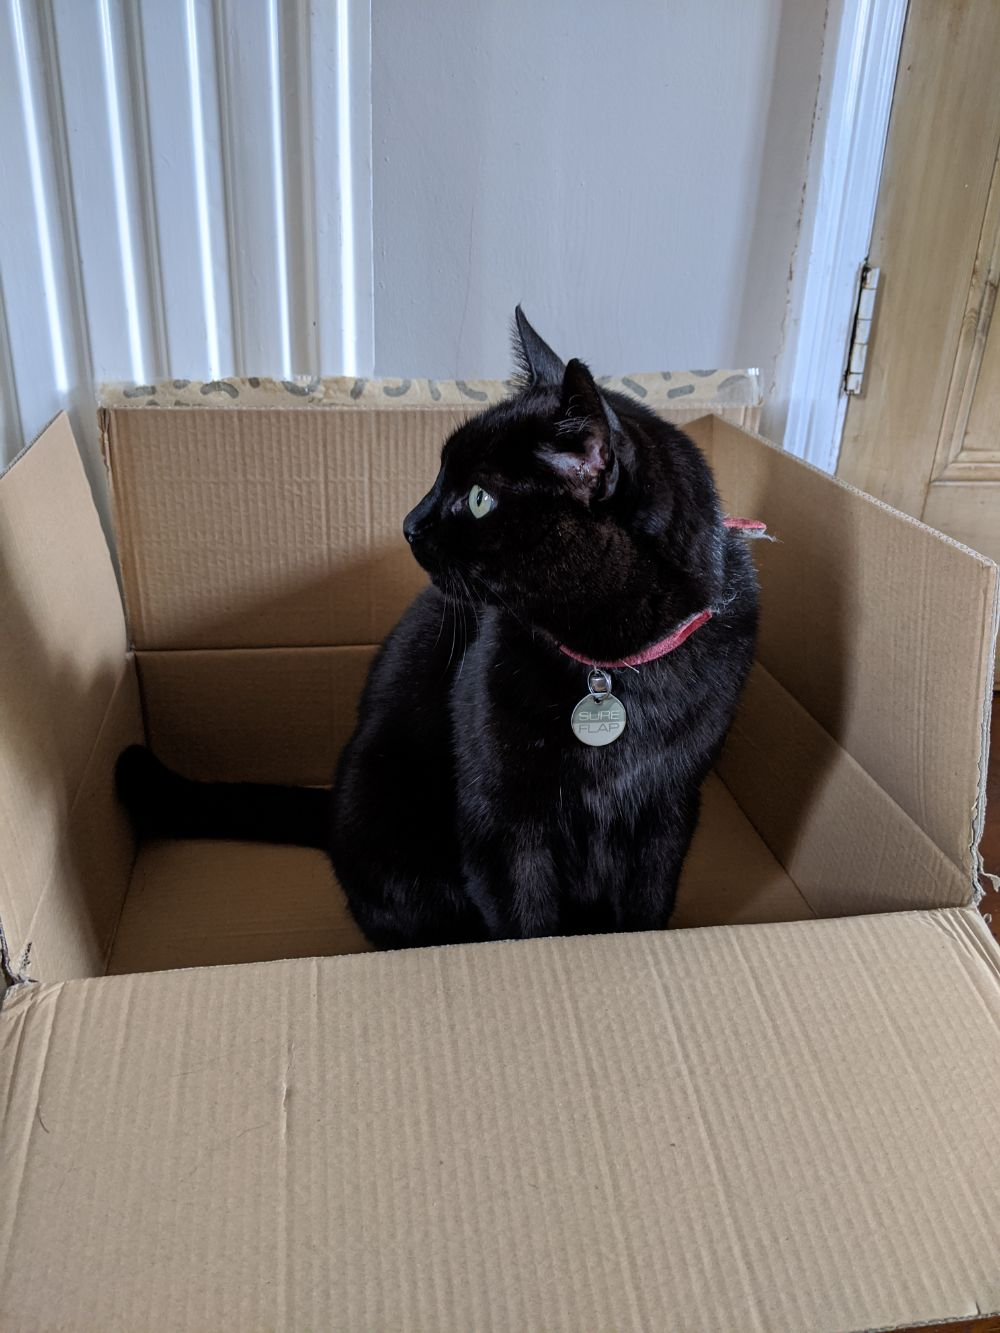 Black cat sitting in a box, looking away from the camera